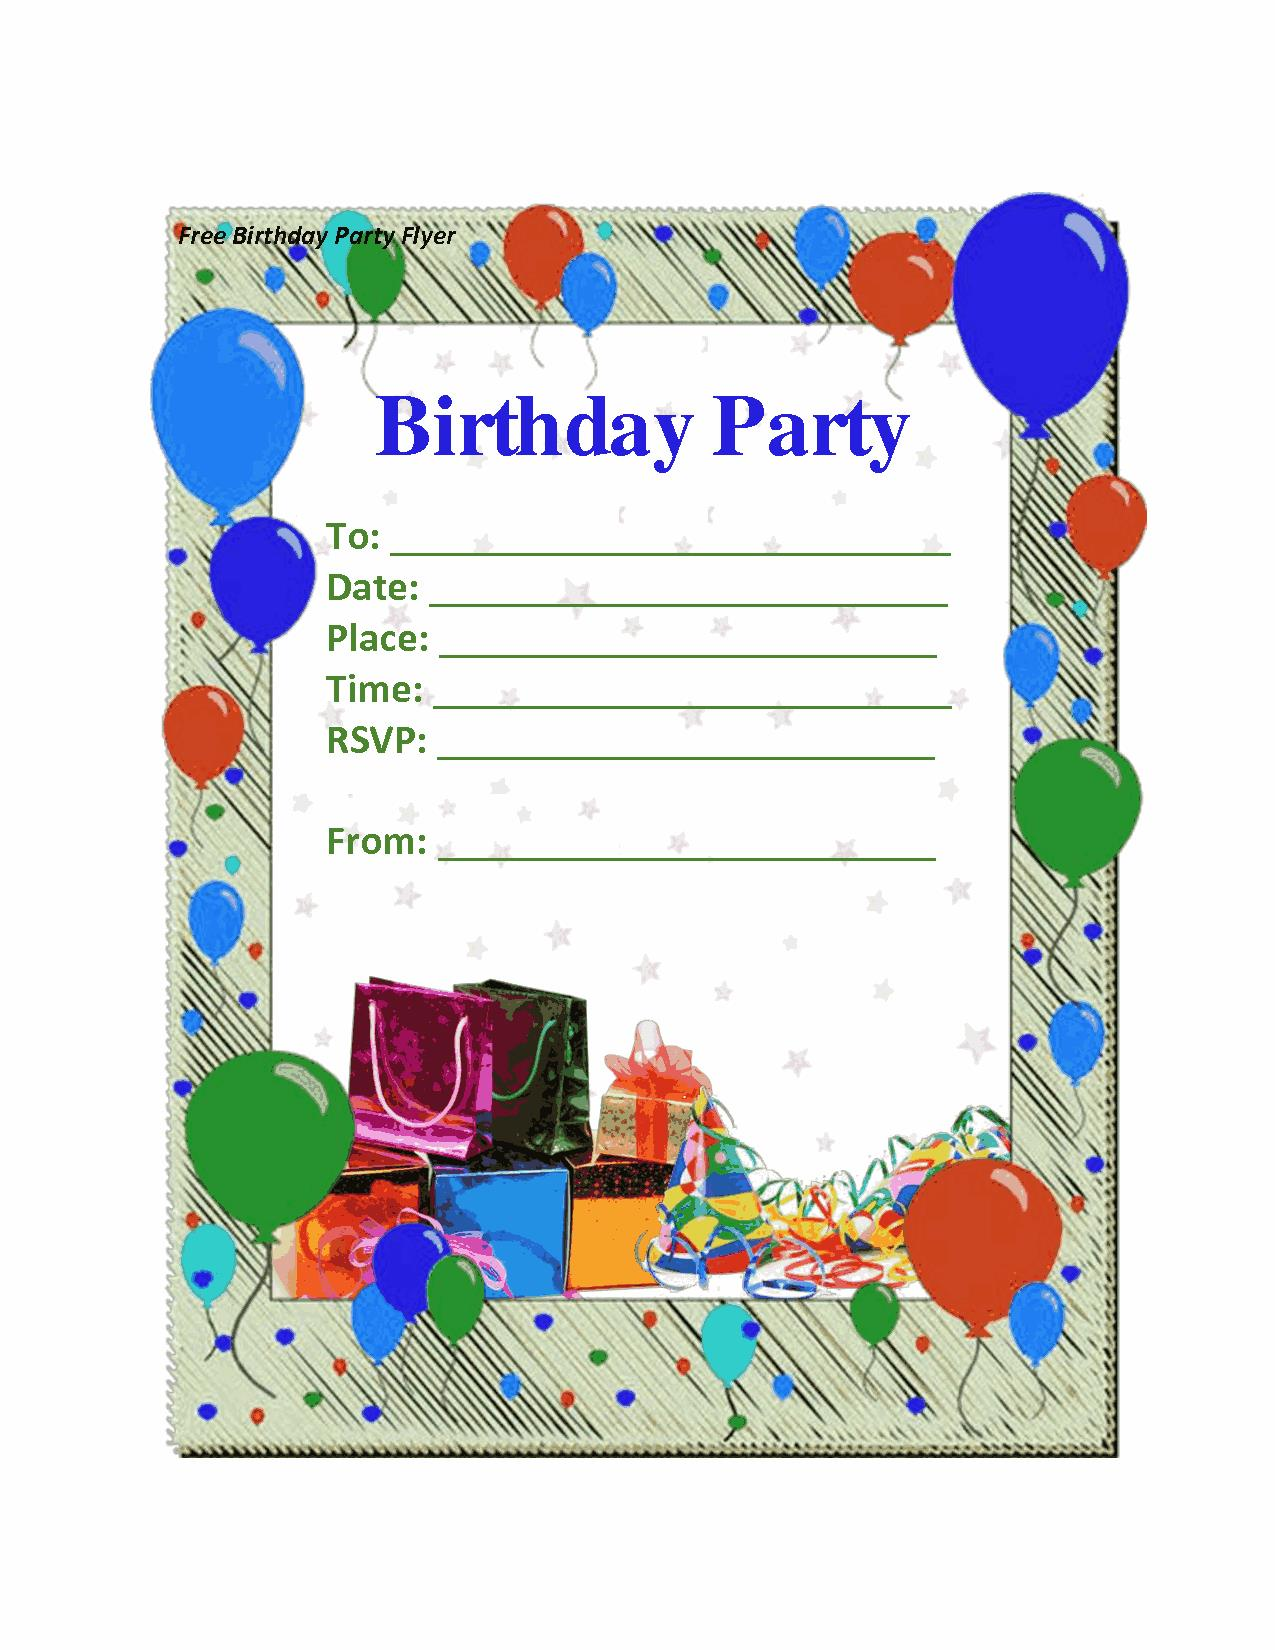 design an invitation card for your birthday party ; birthday-party-invitation-templates-for-complete-your-Birthday-Invitation-with-chic-design-8